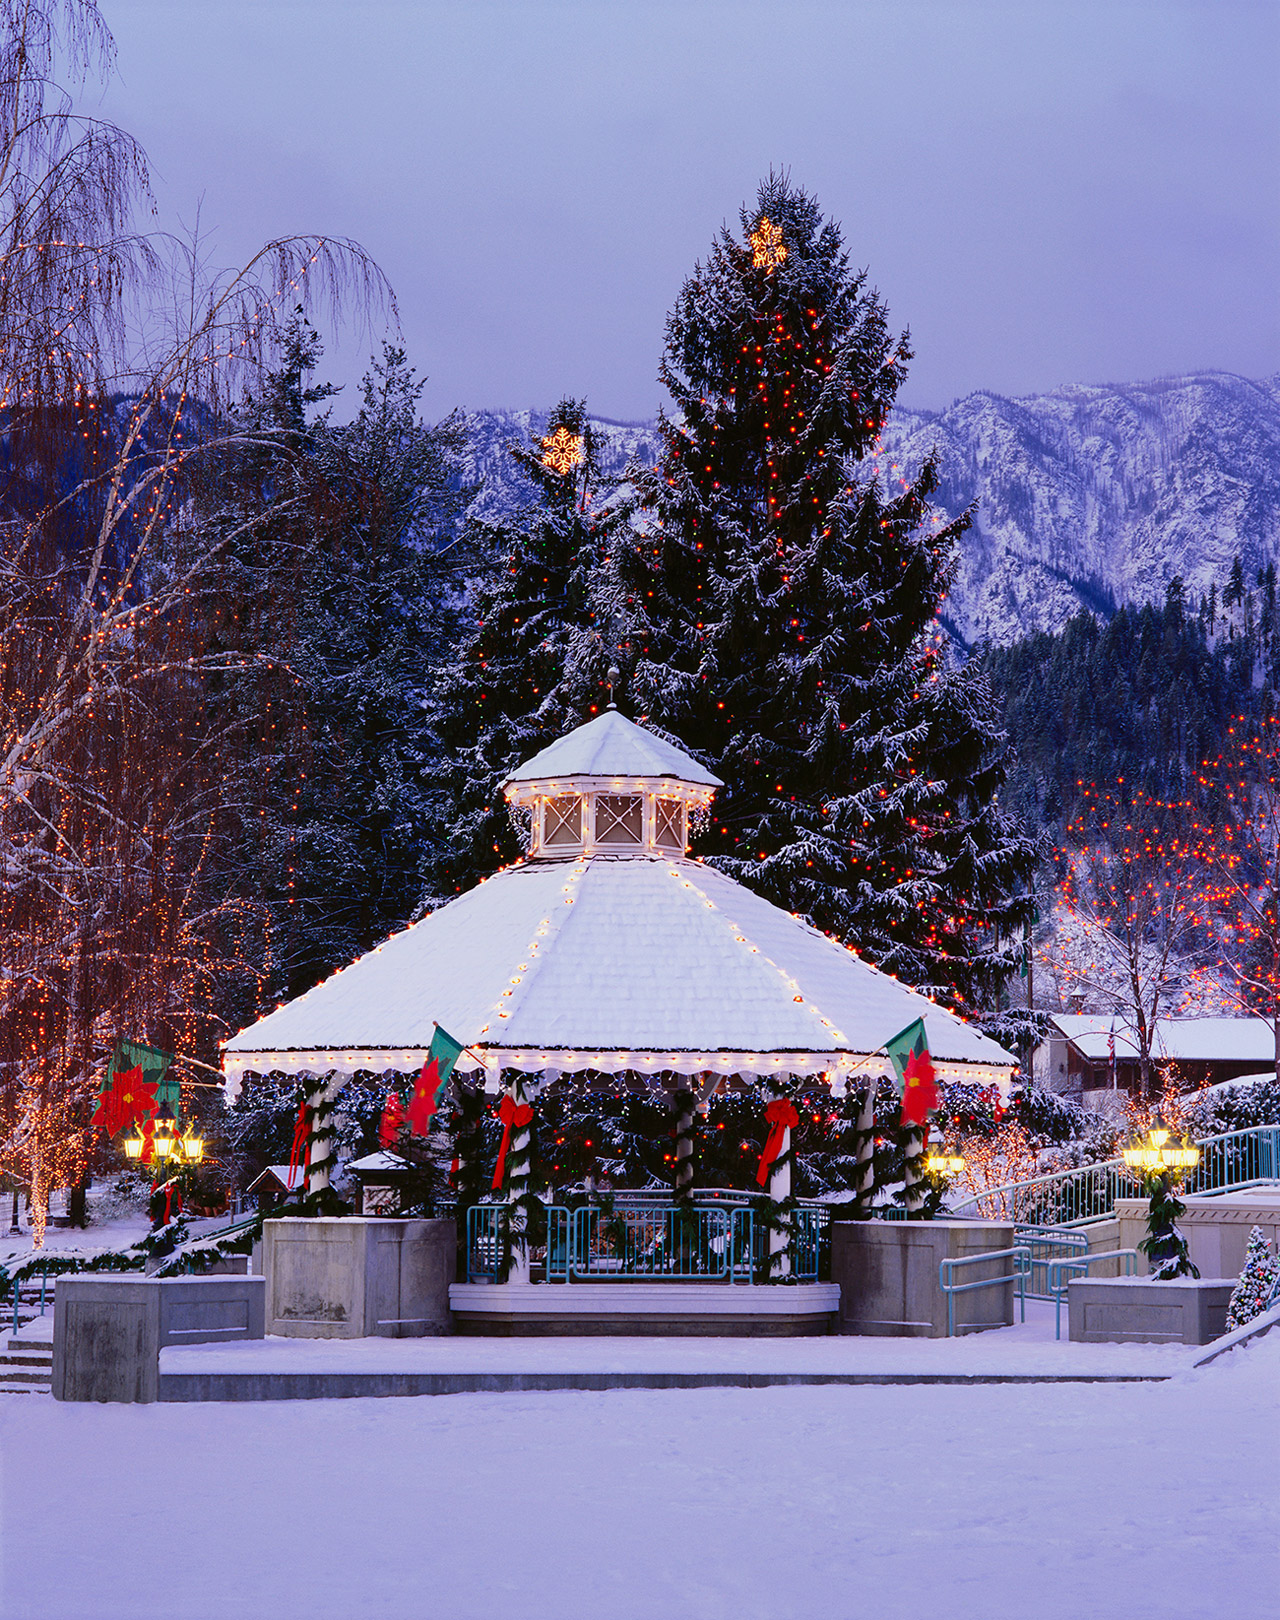 The Most Charming Small Towns to Visit During the Christmas Season